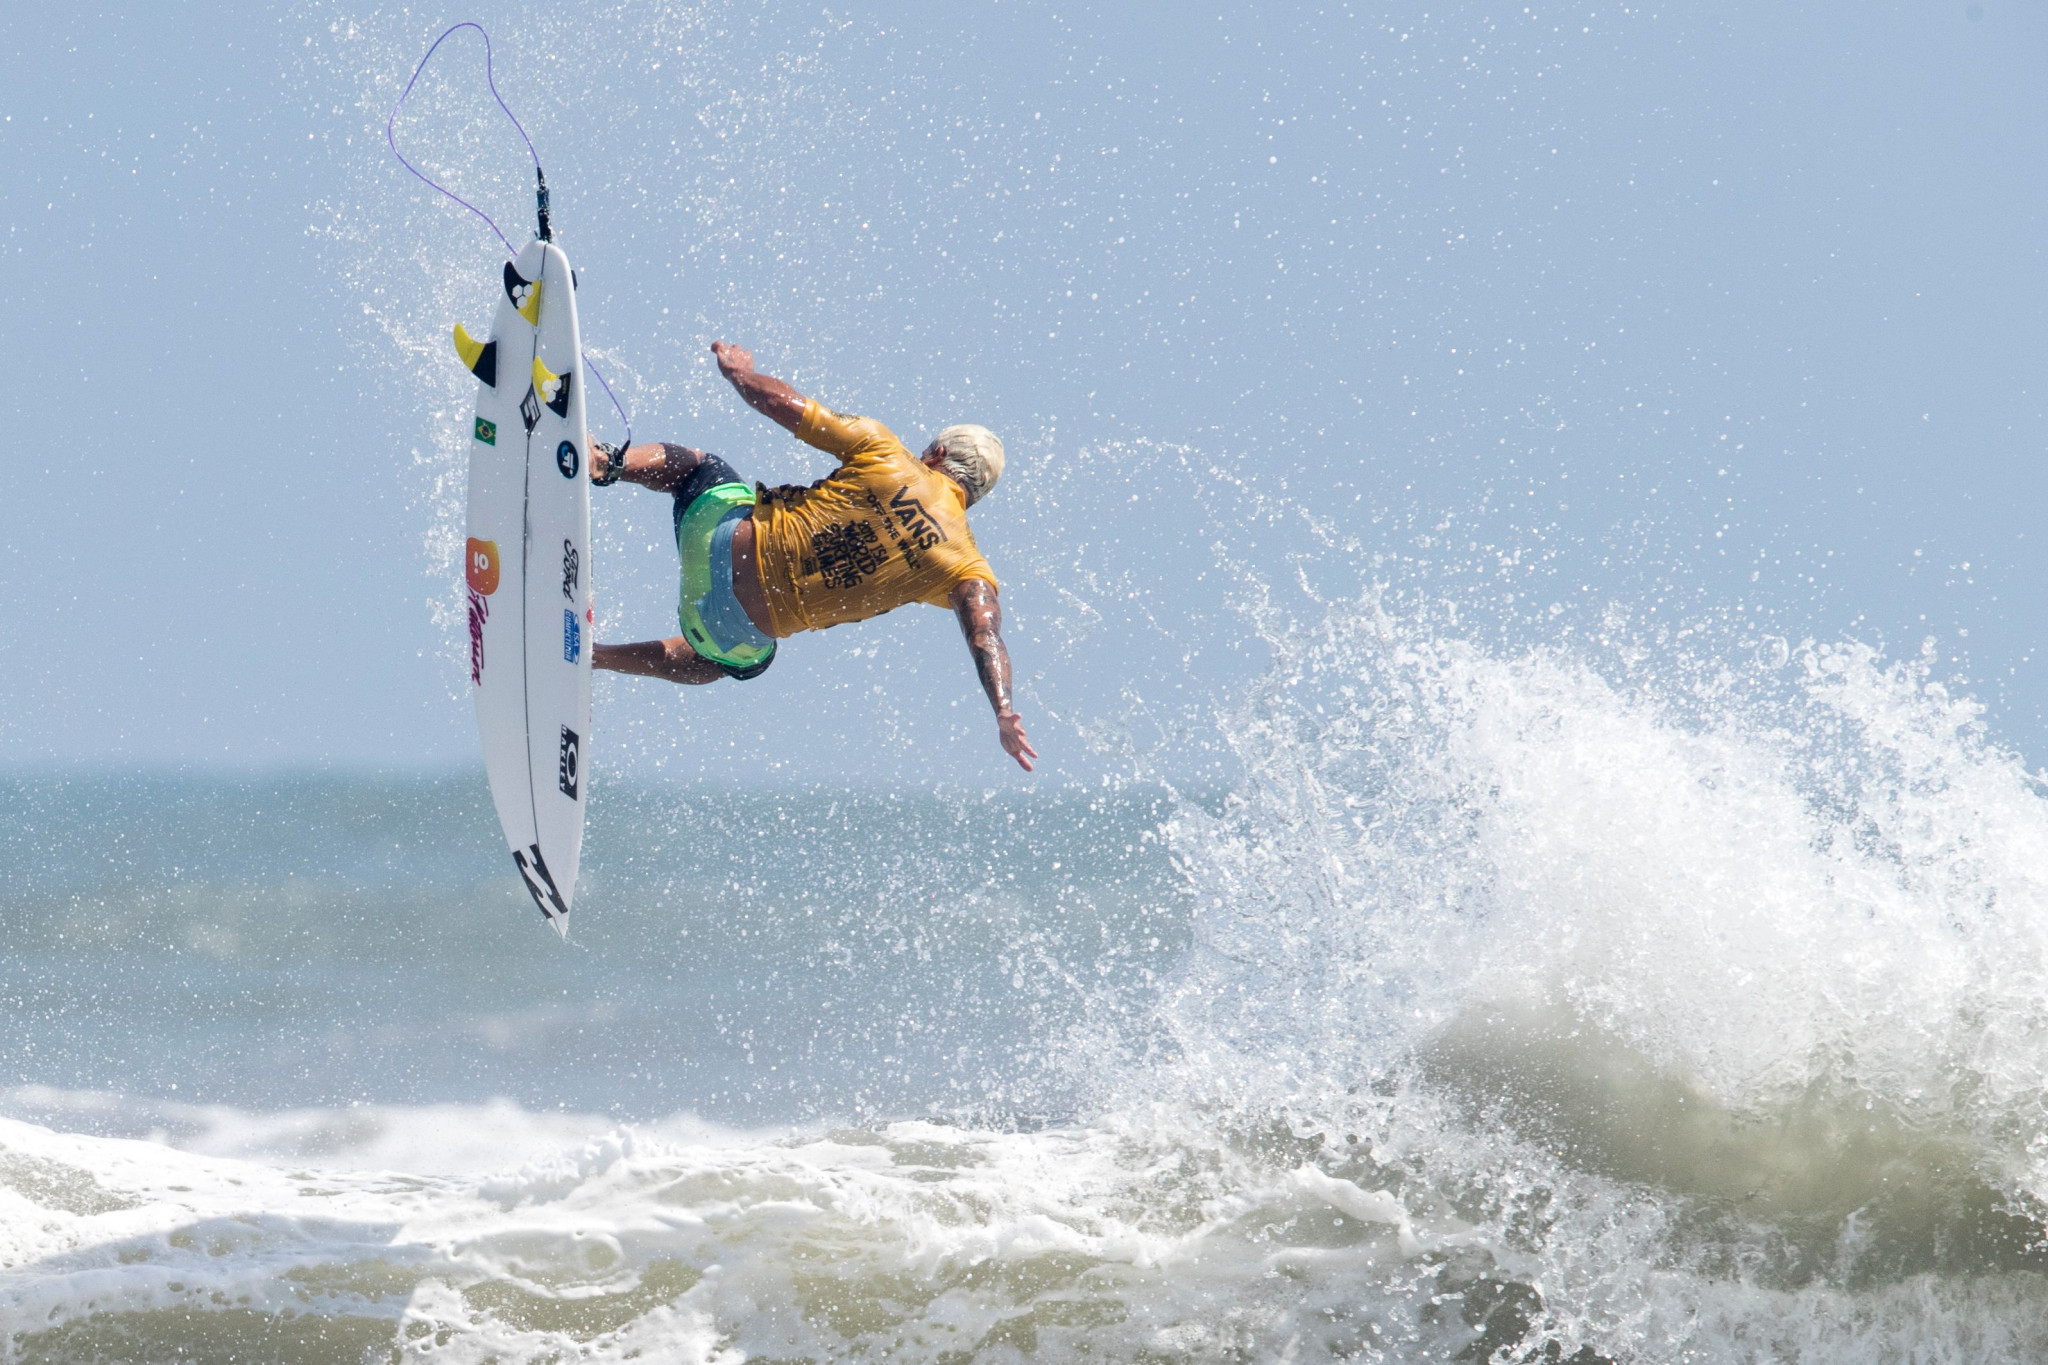 The ISA will hold its Annual General Meeting alongside next year's World Surfing Games ©Getty Images